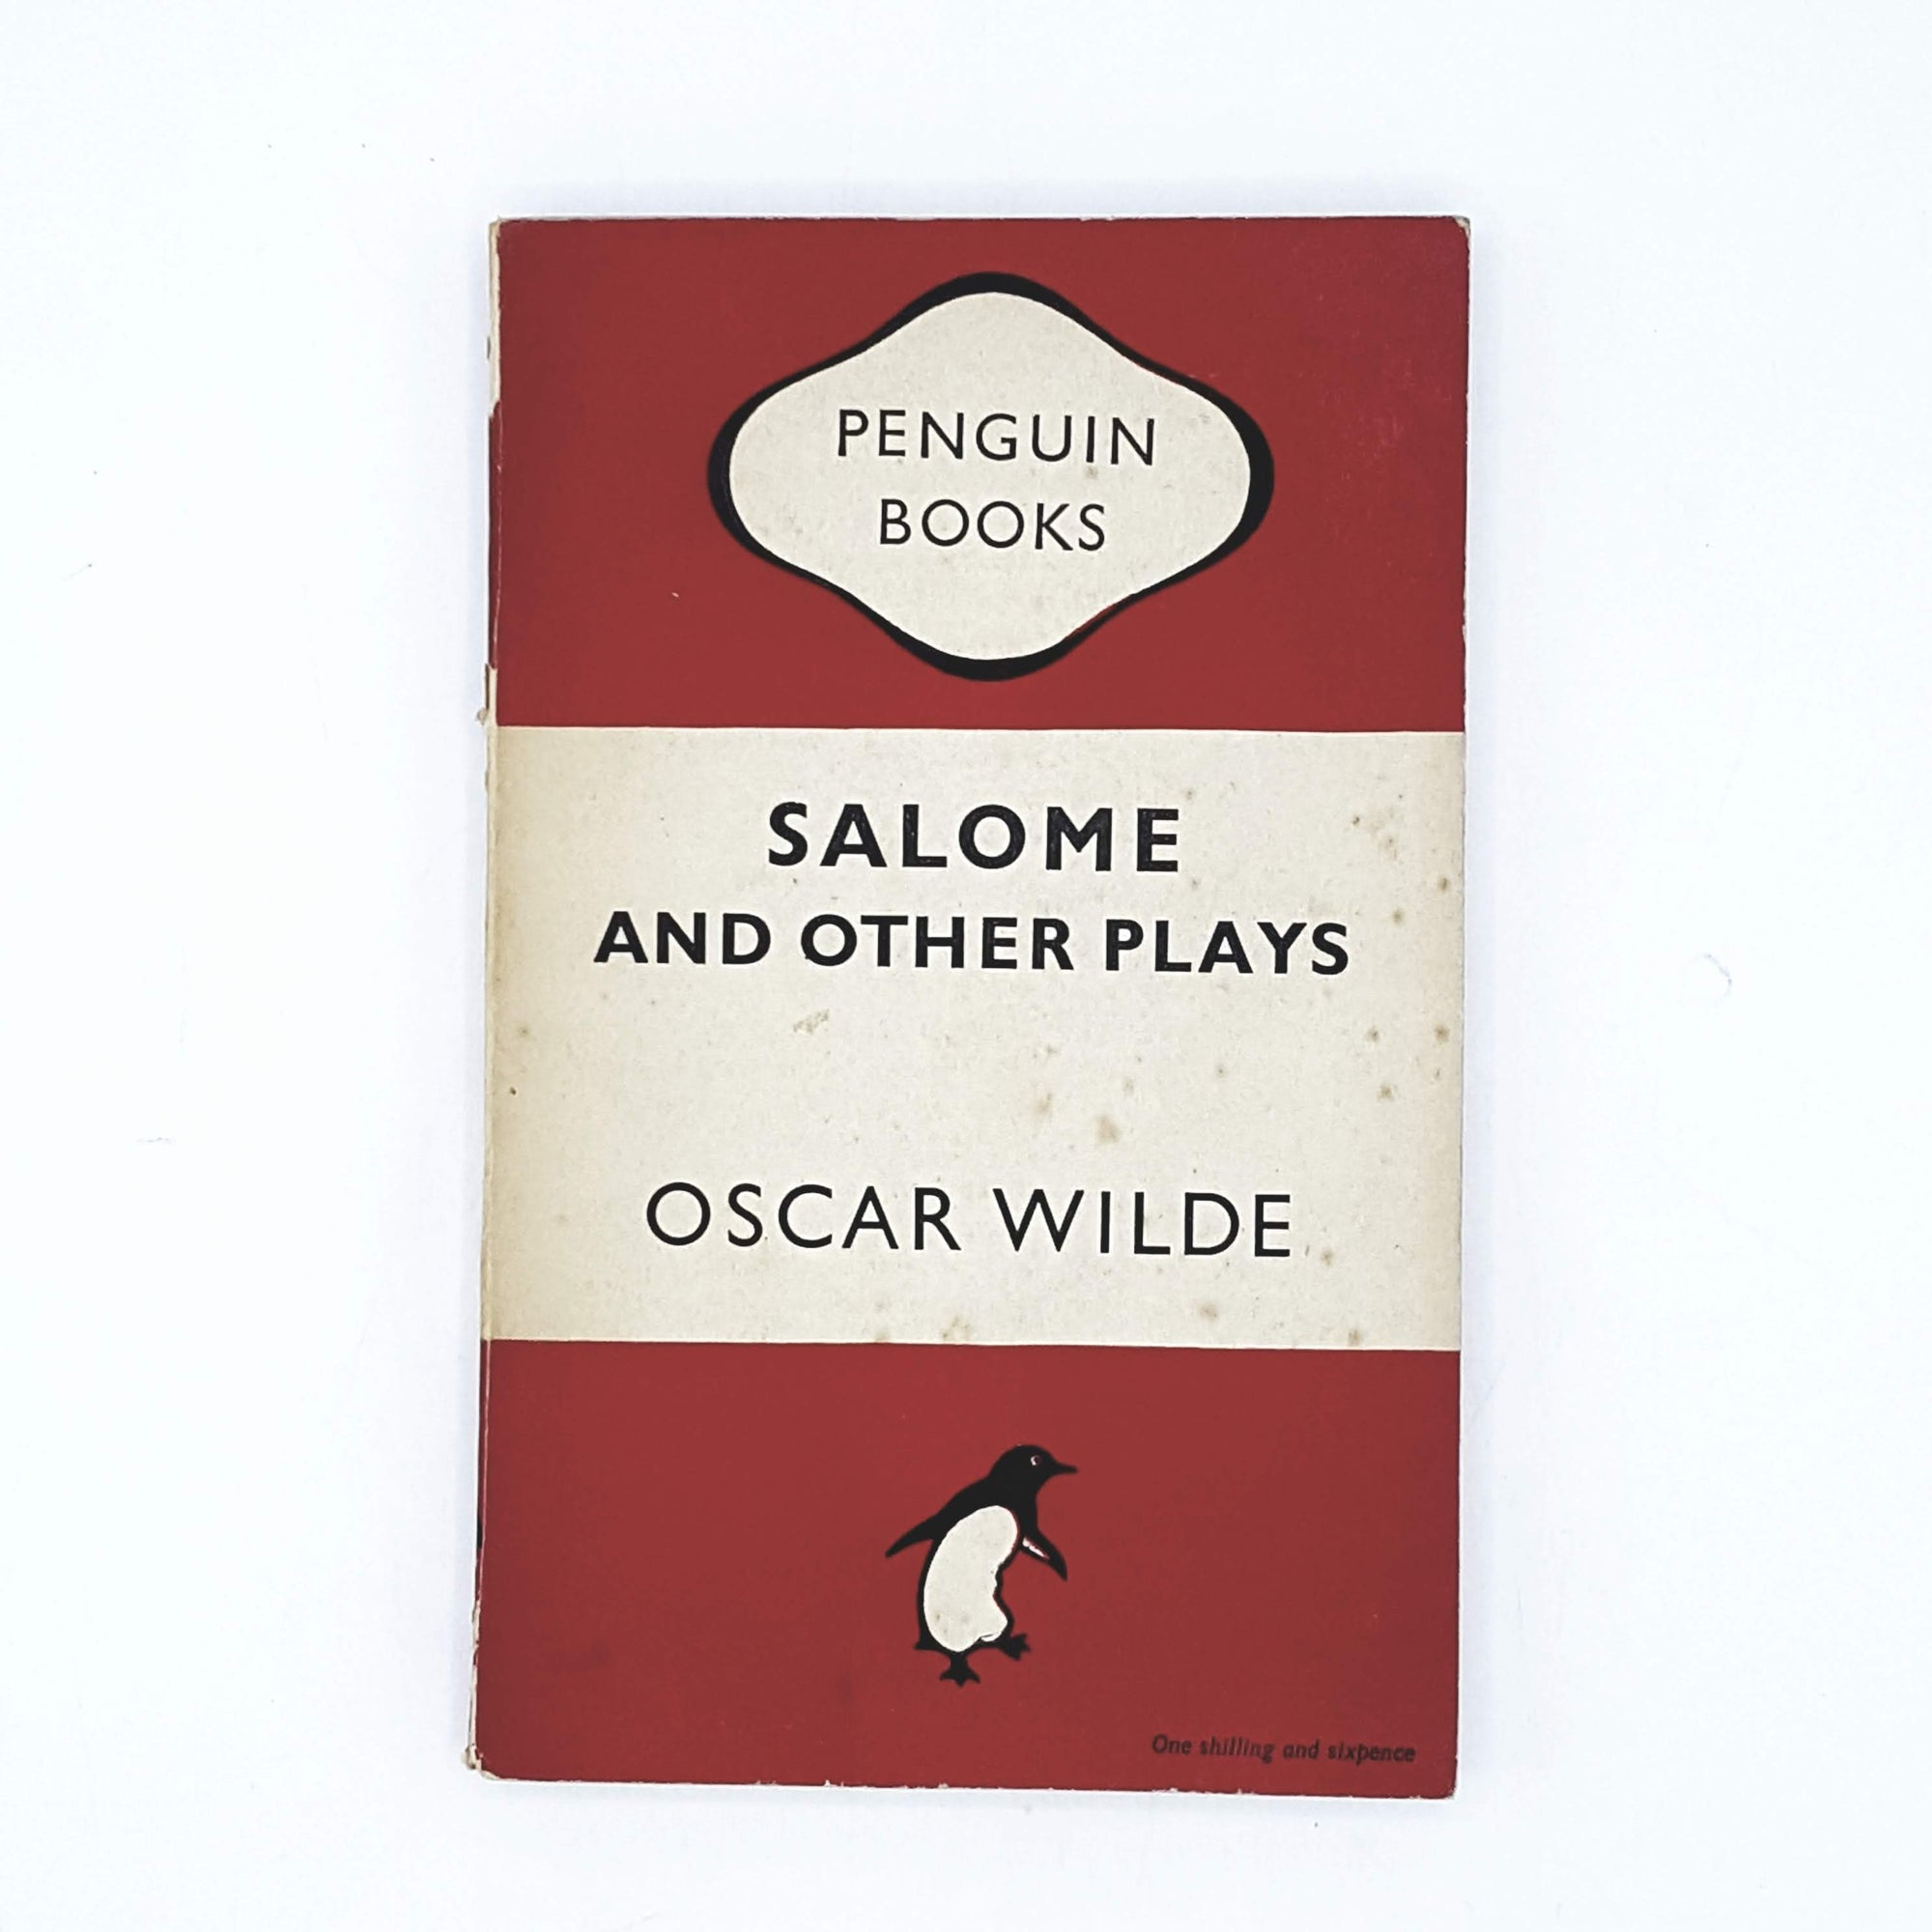 Oscar Wilde's Salome and Other Plays